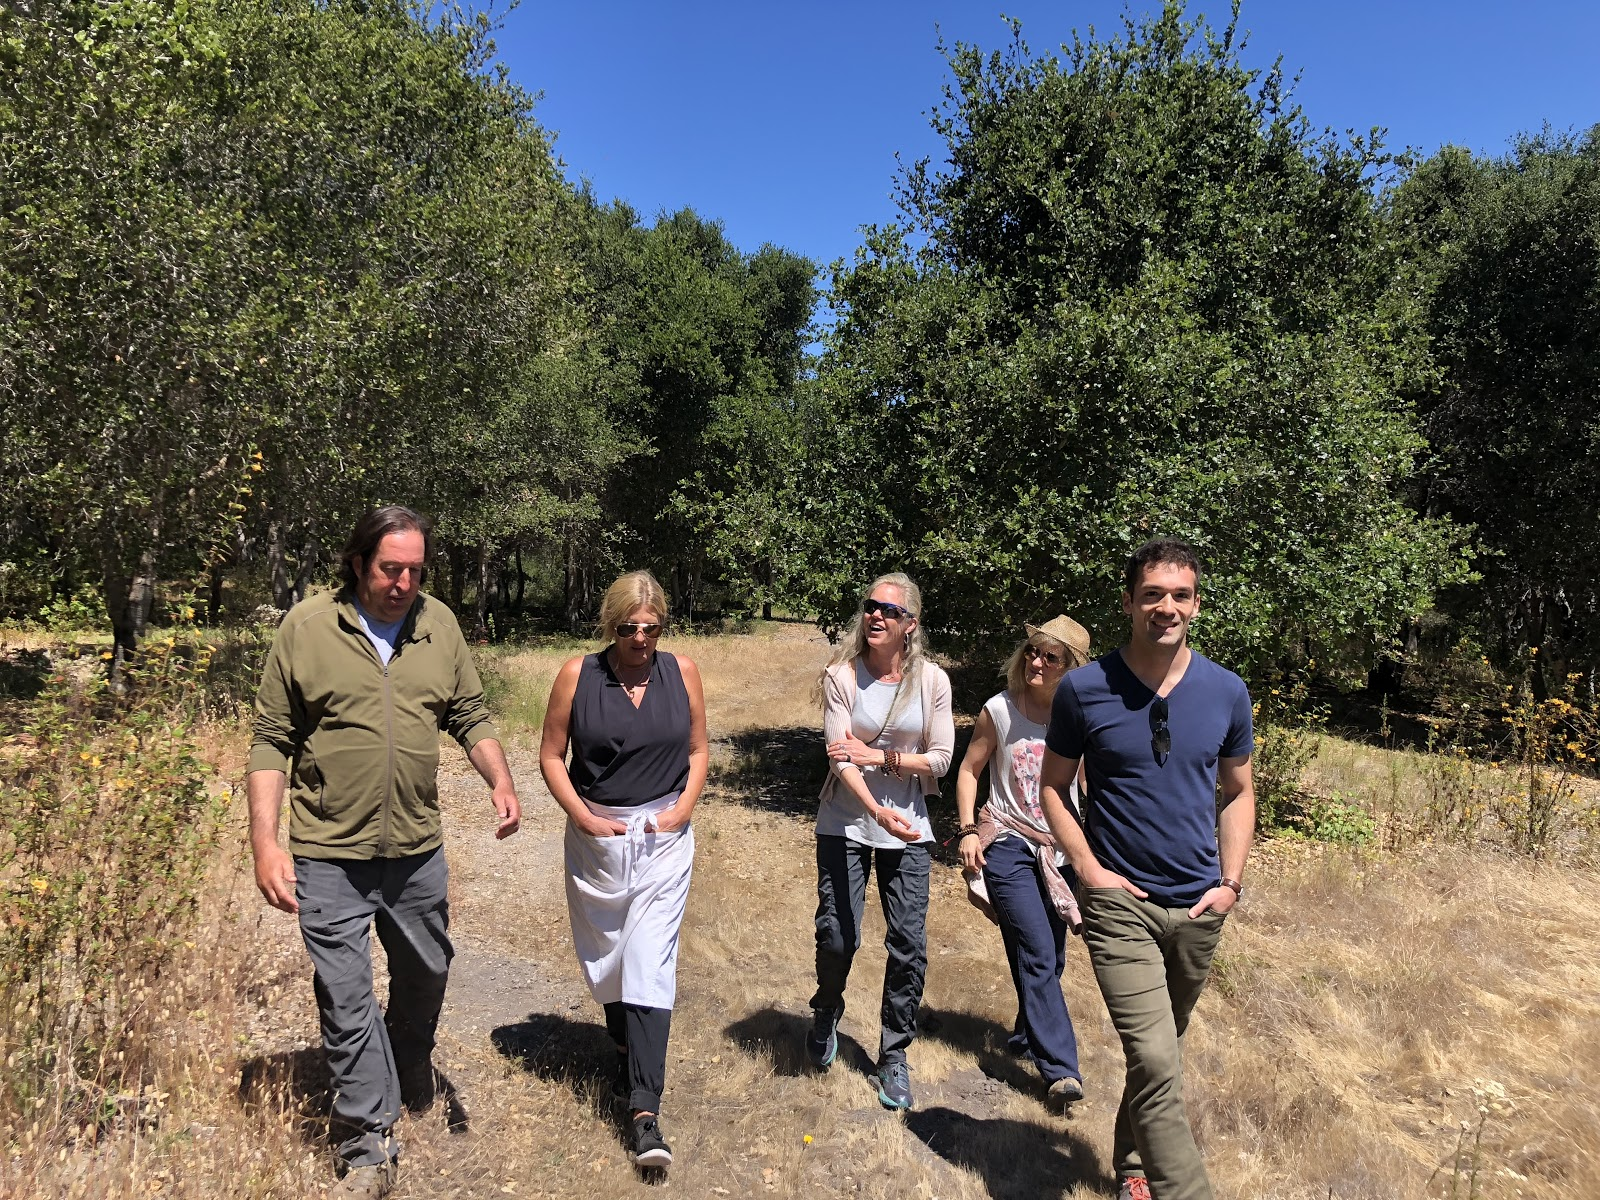 Walking Discussions - Topics and aspirations included:A focus on completely eliminating plastics at home.Creating a platform for scientists to better lead.Spending more time in nature to bring balance to our minds, bodies and society.